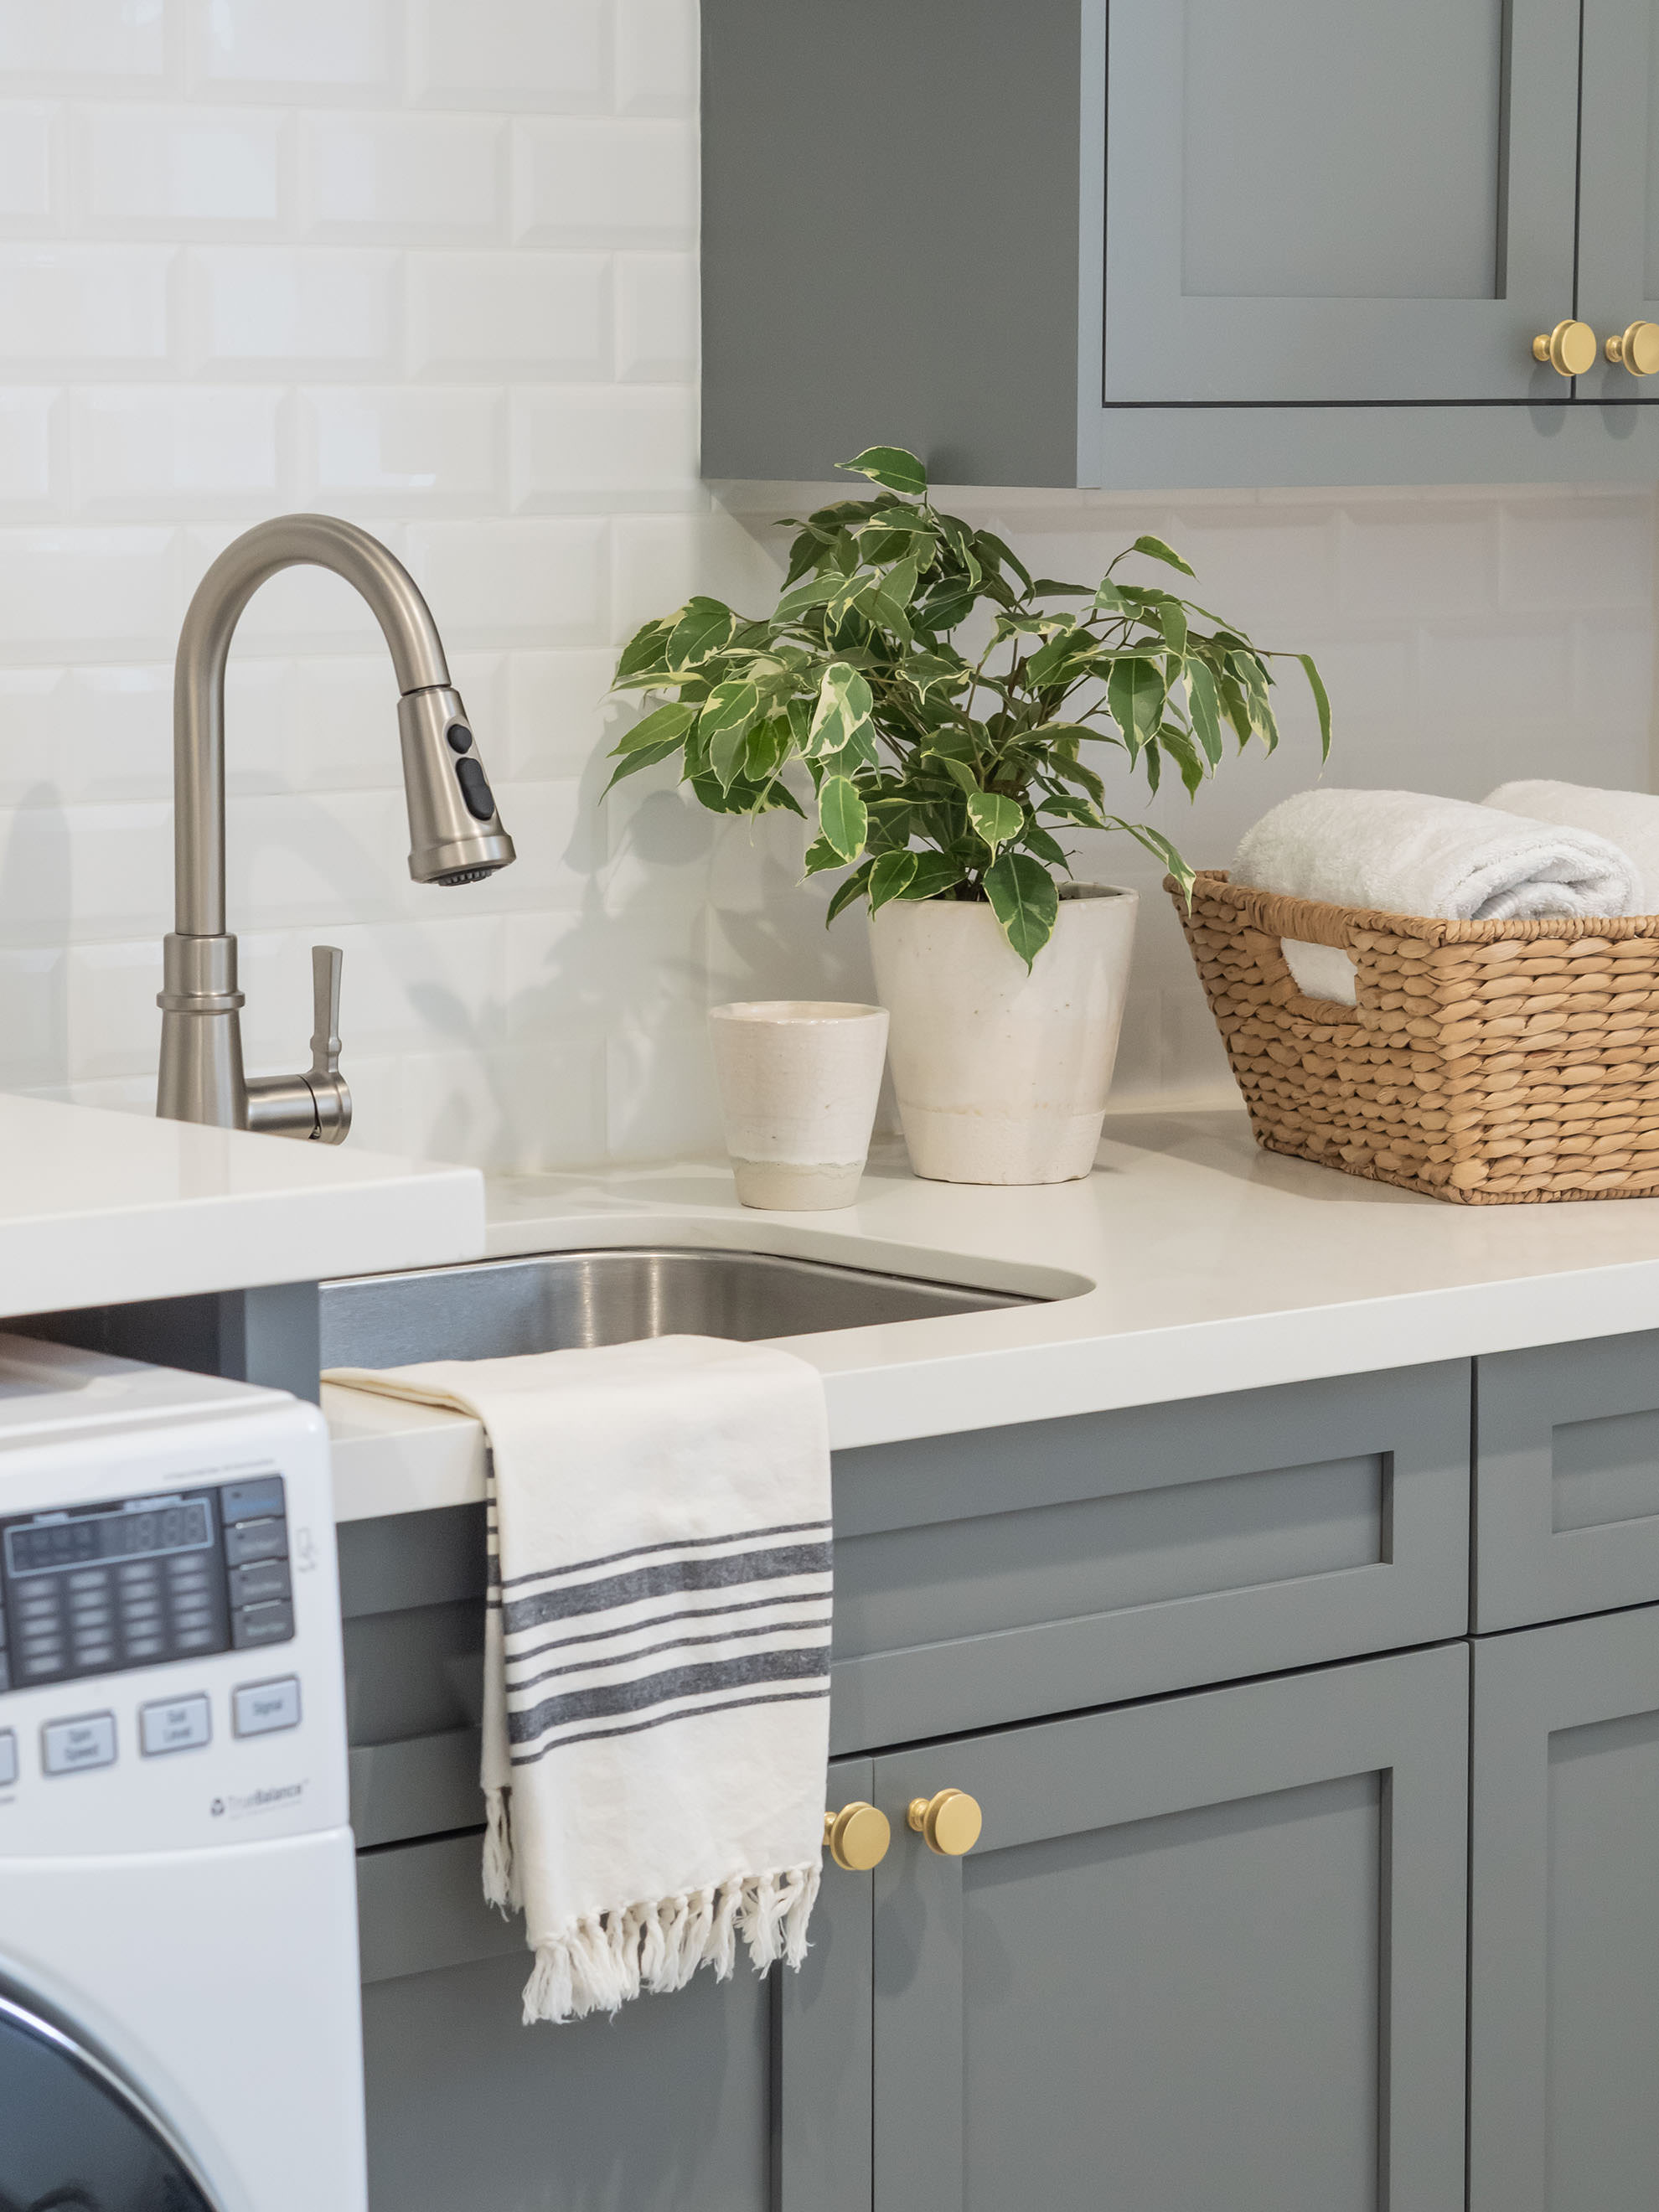 This  Moen faucet  and  Elkay sink  make a perfect pair.